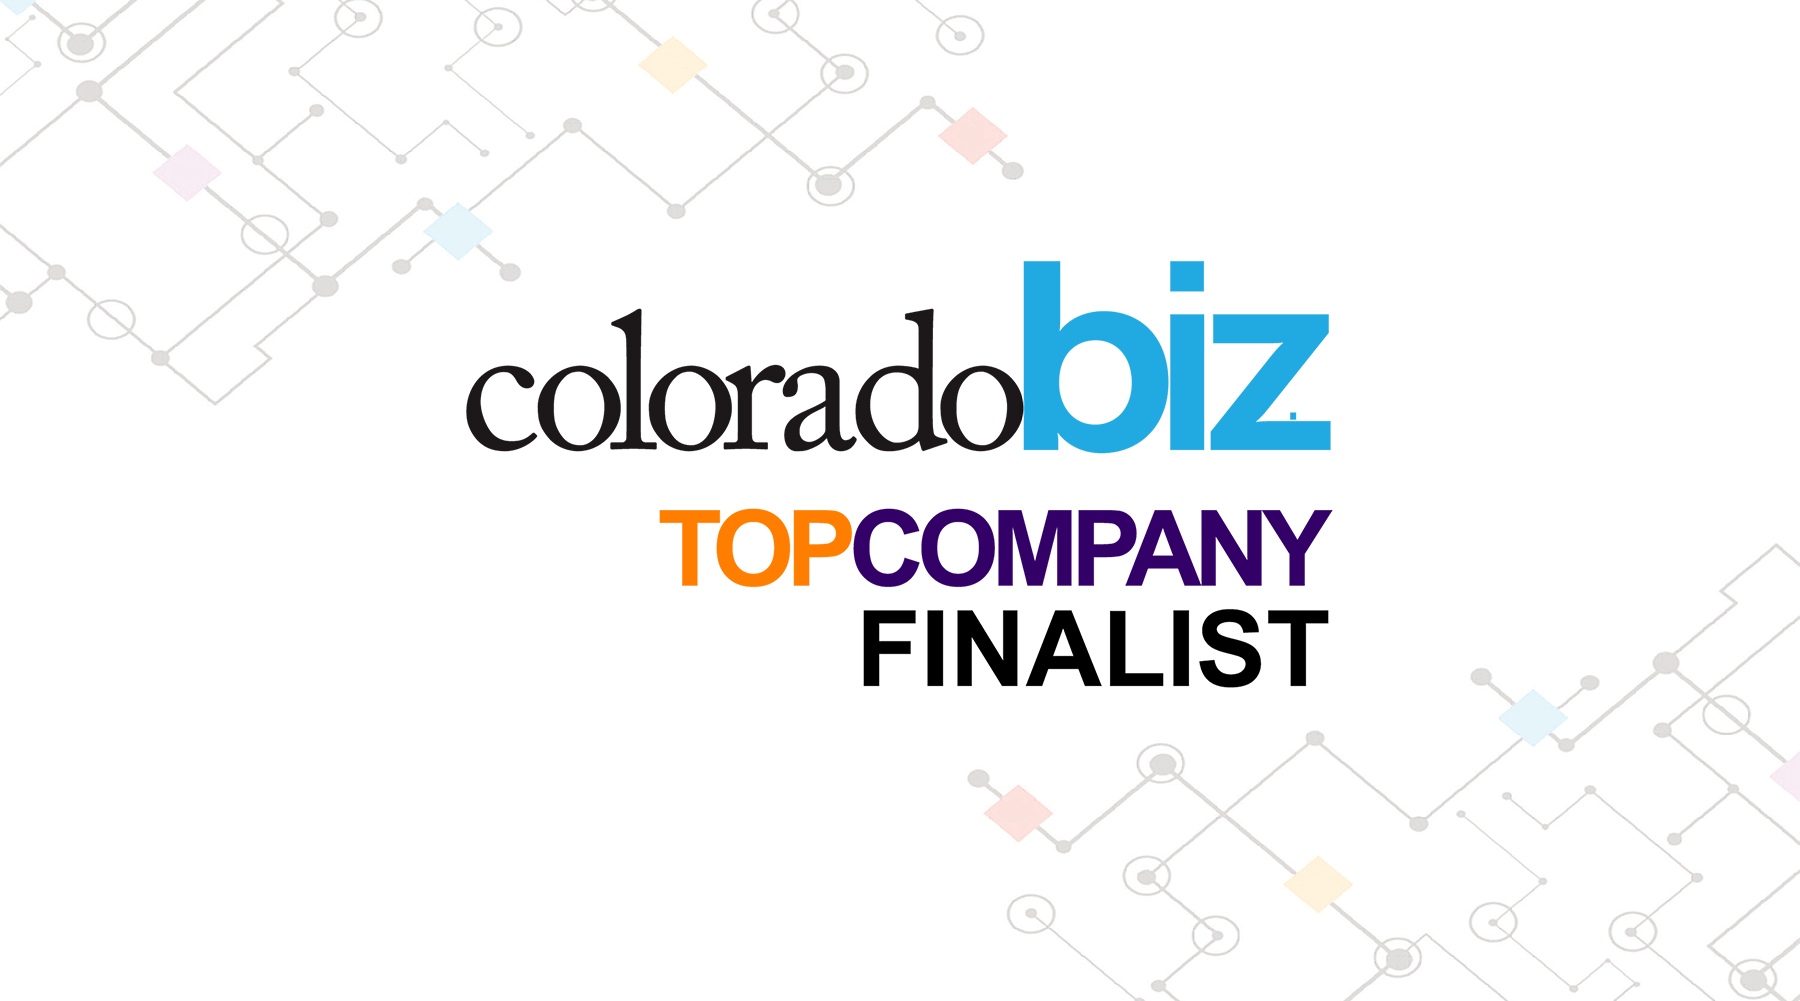 ColoradoBiz Top Company Finalist